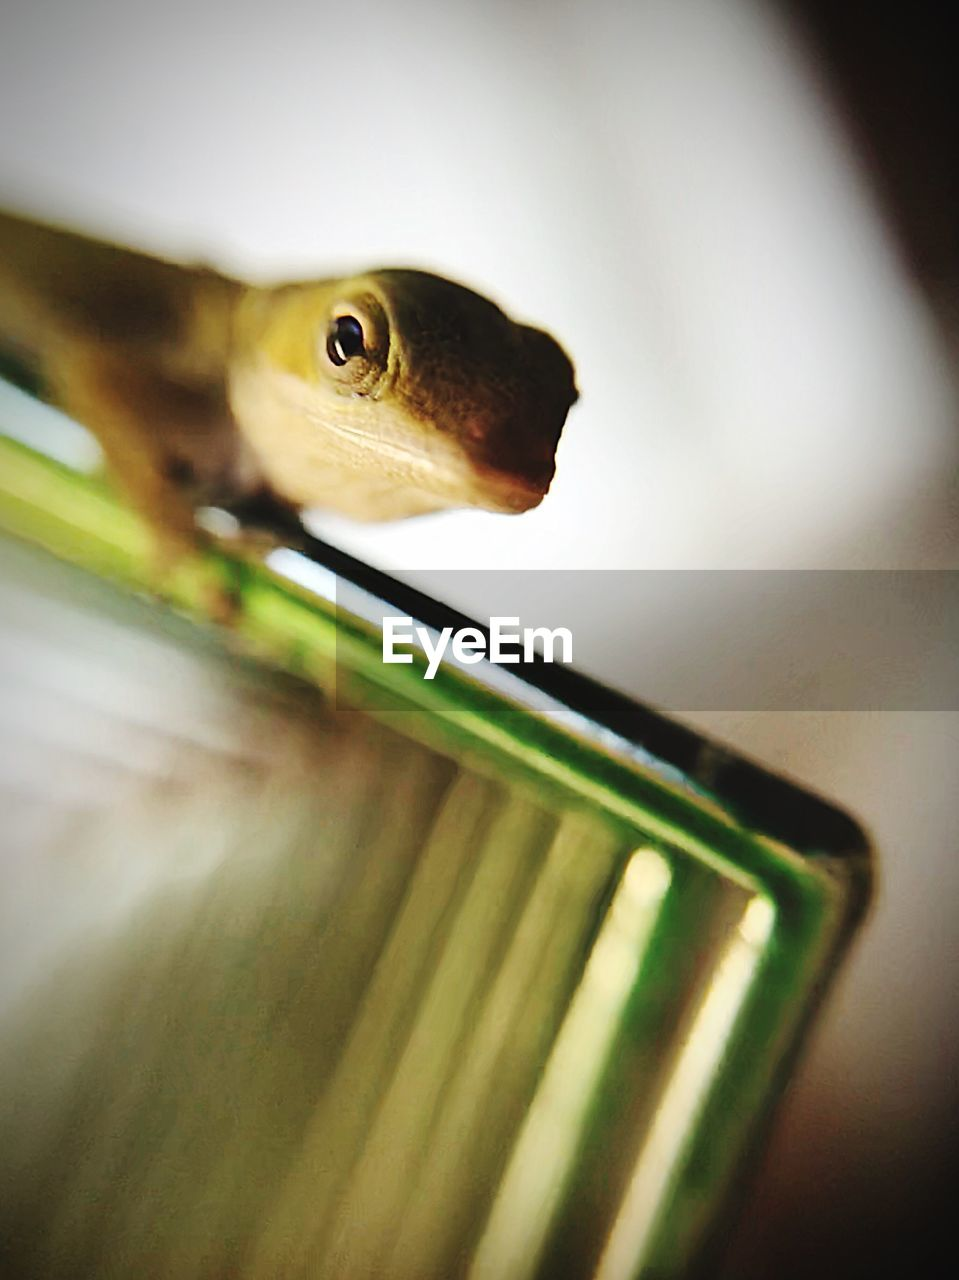 animal, one animal, close-up, animal themes, indoors, selective focus, reptile, vertebrate, no people, animal wildlife, animal body part, animals in the wild, animal head, swimming, animals in captivity, transparent, focus on foreground, lizard, green color, mouth open, animal eye